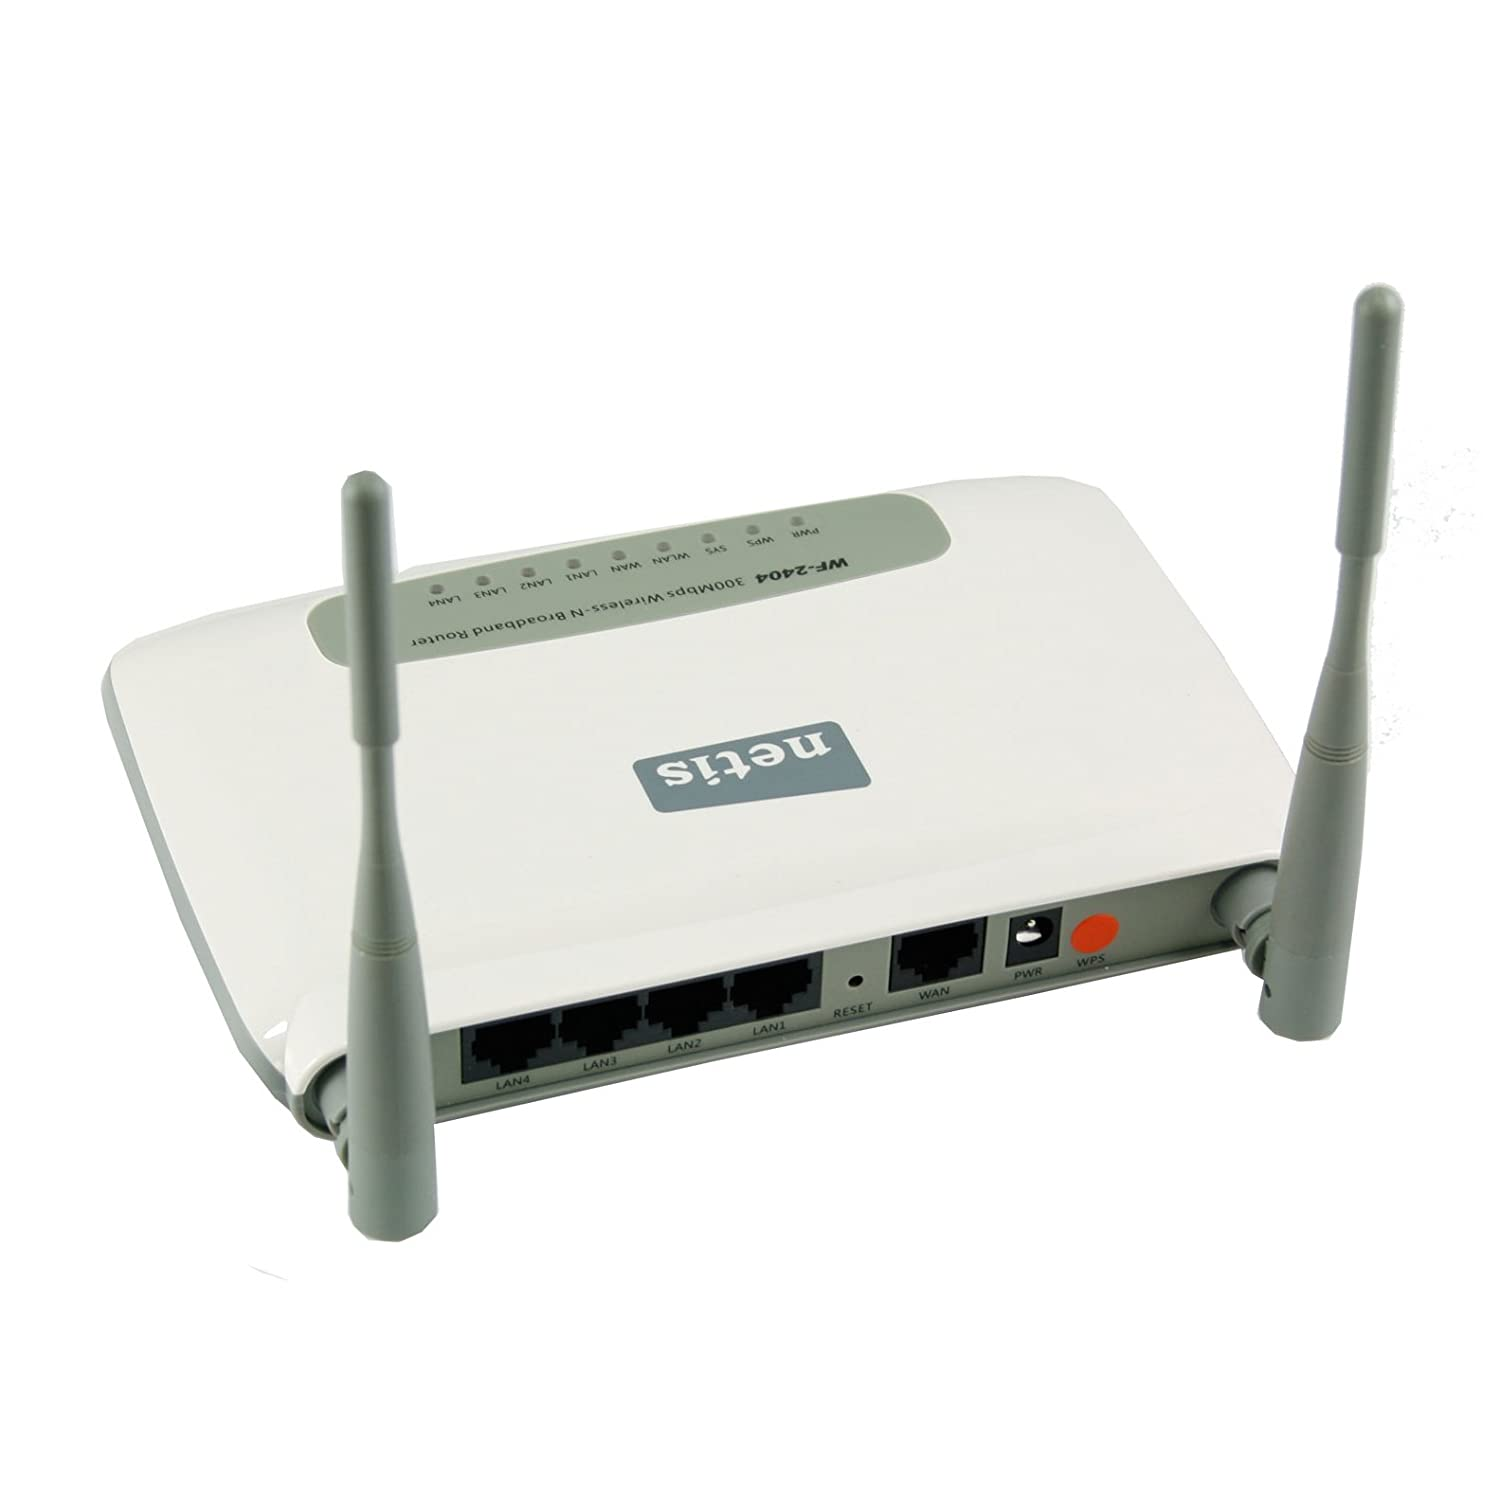 Netis Wf 2404 Driver Wf2419e 300mbps Wireless Router Navigate To Port Forwarding You Can Enter Either The Ip Address Of Your Computer Or Another